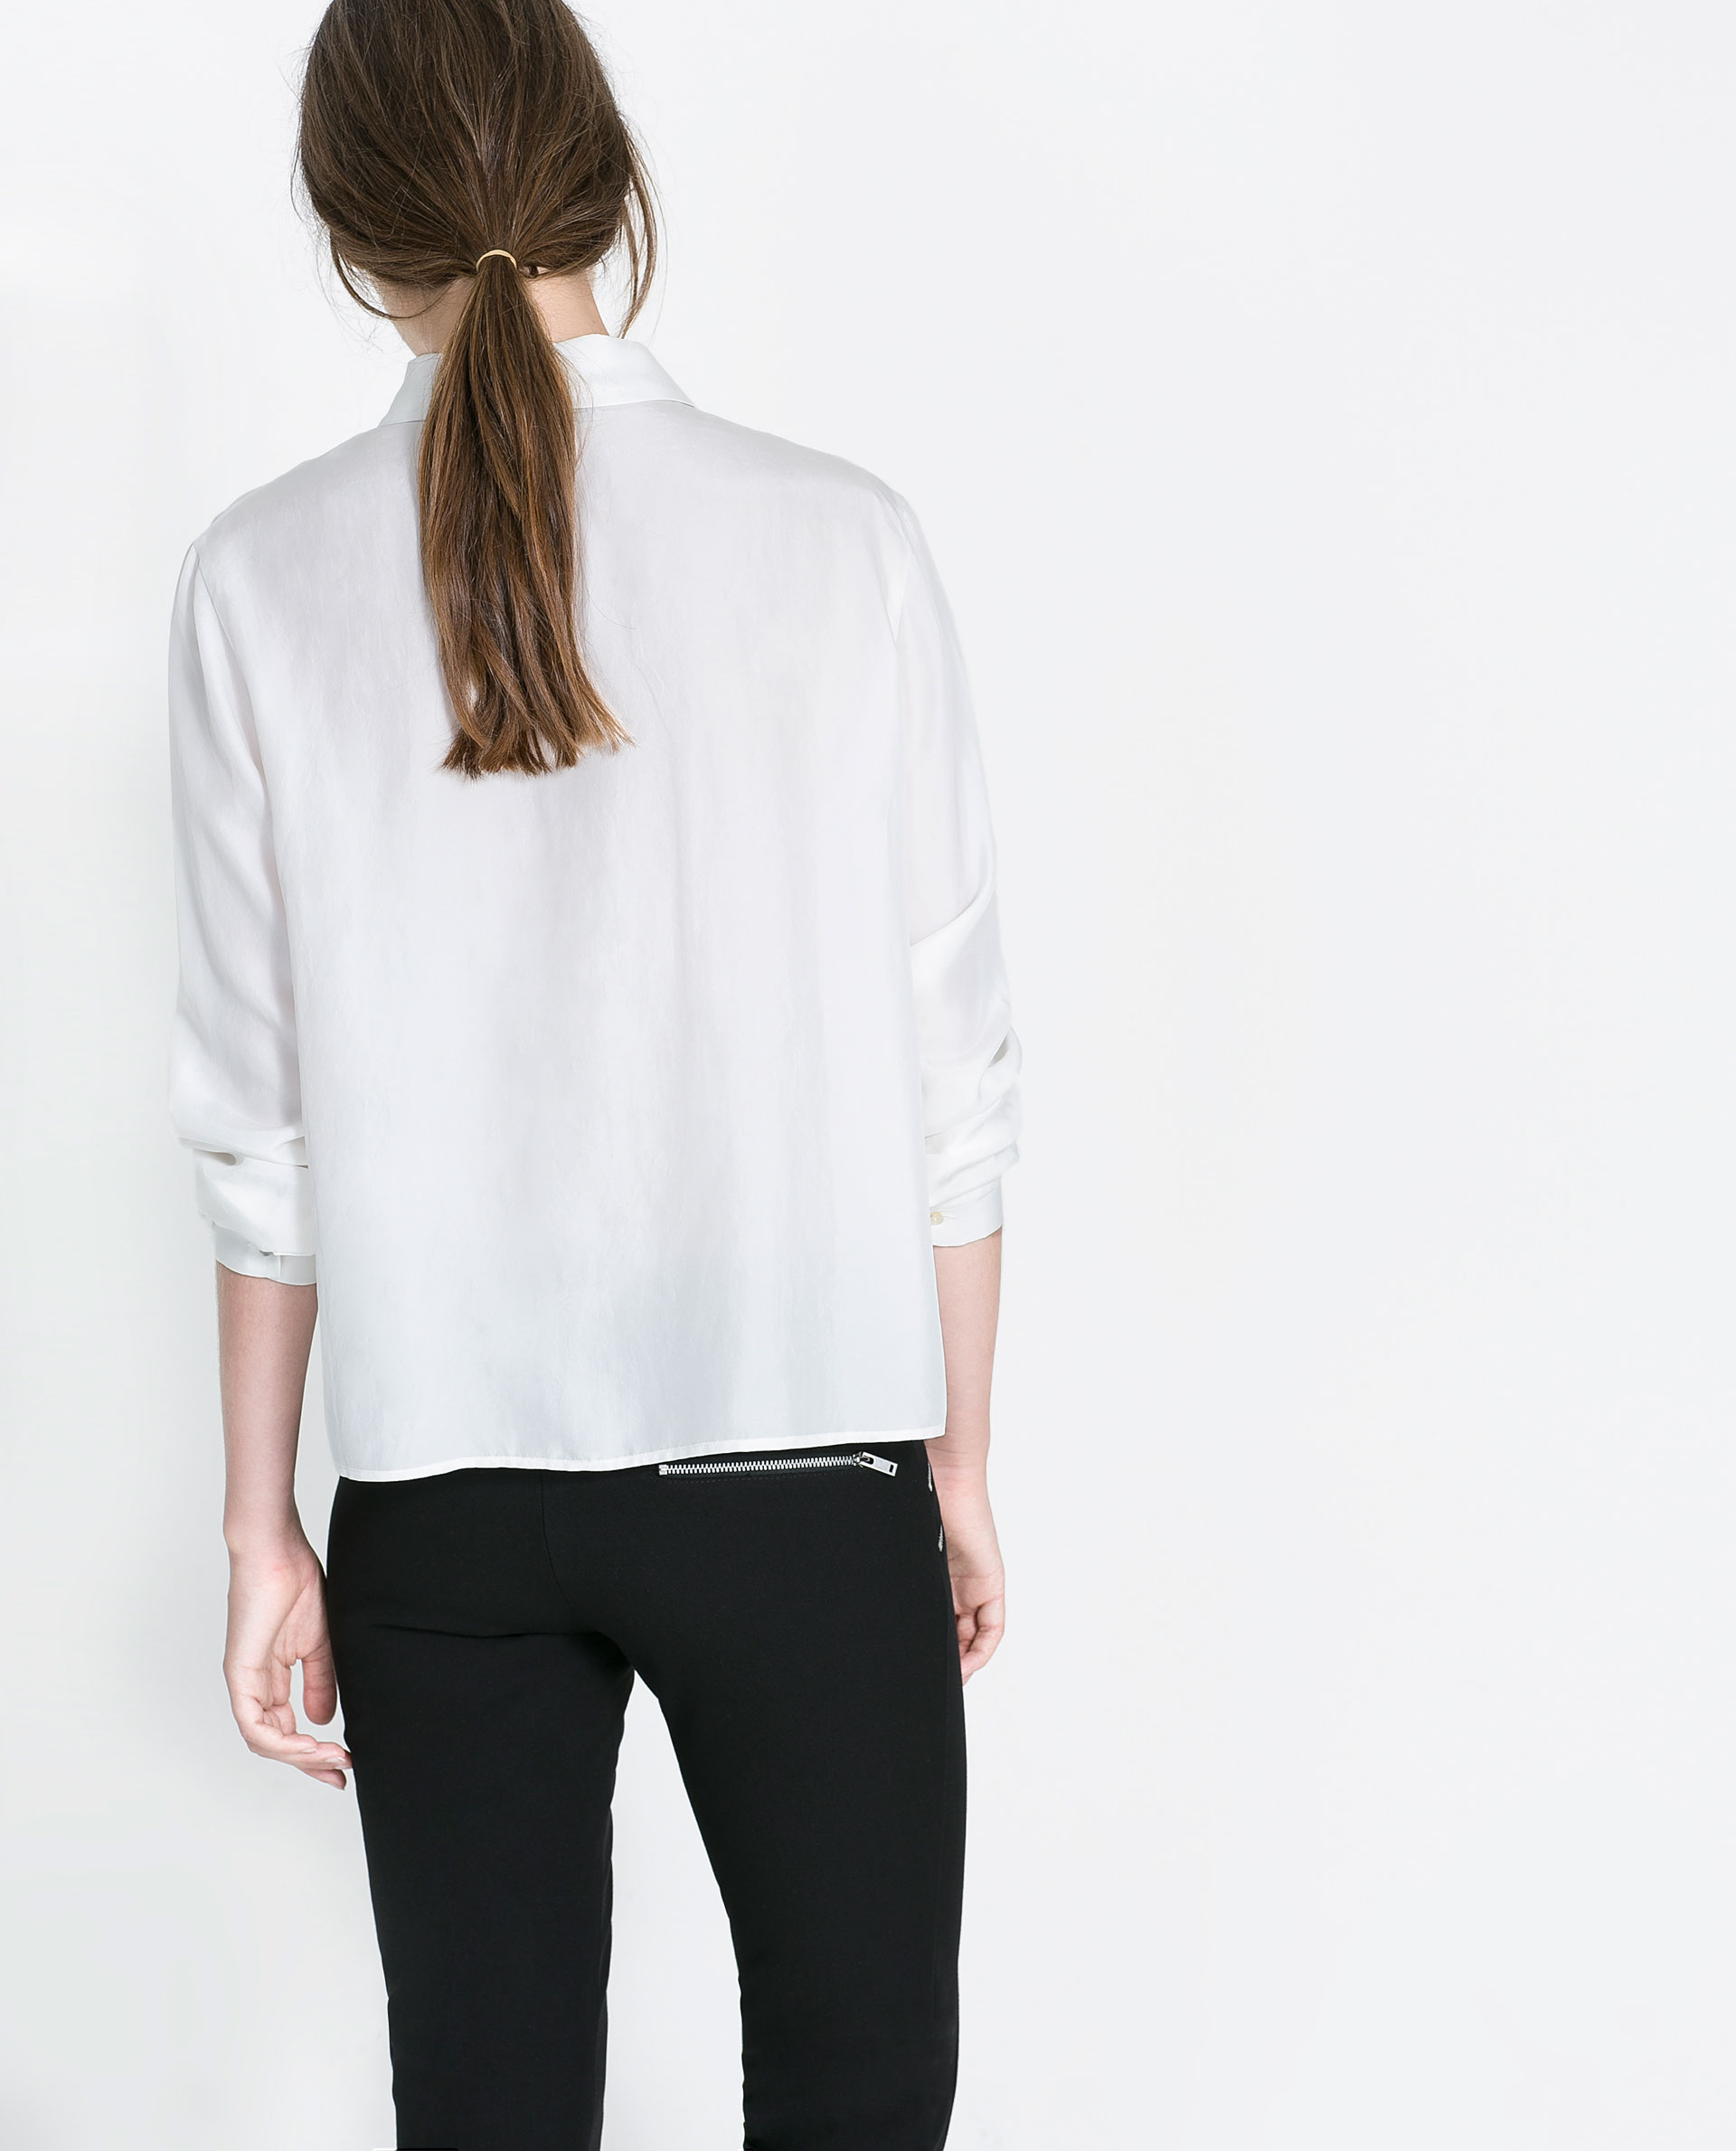 Zara White Silk Blouse 79